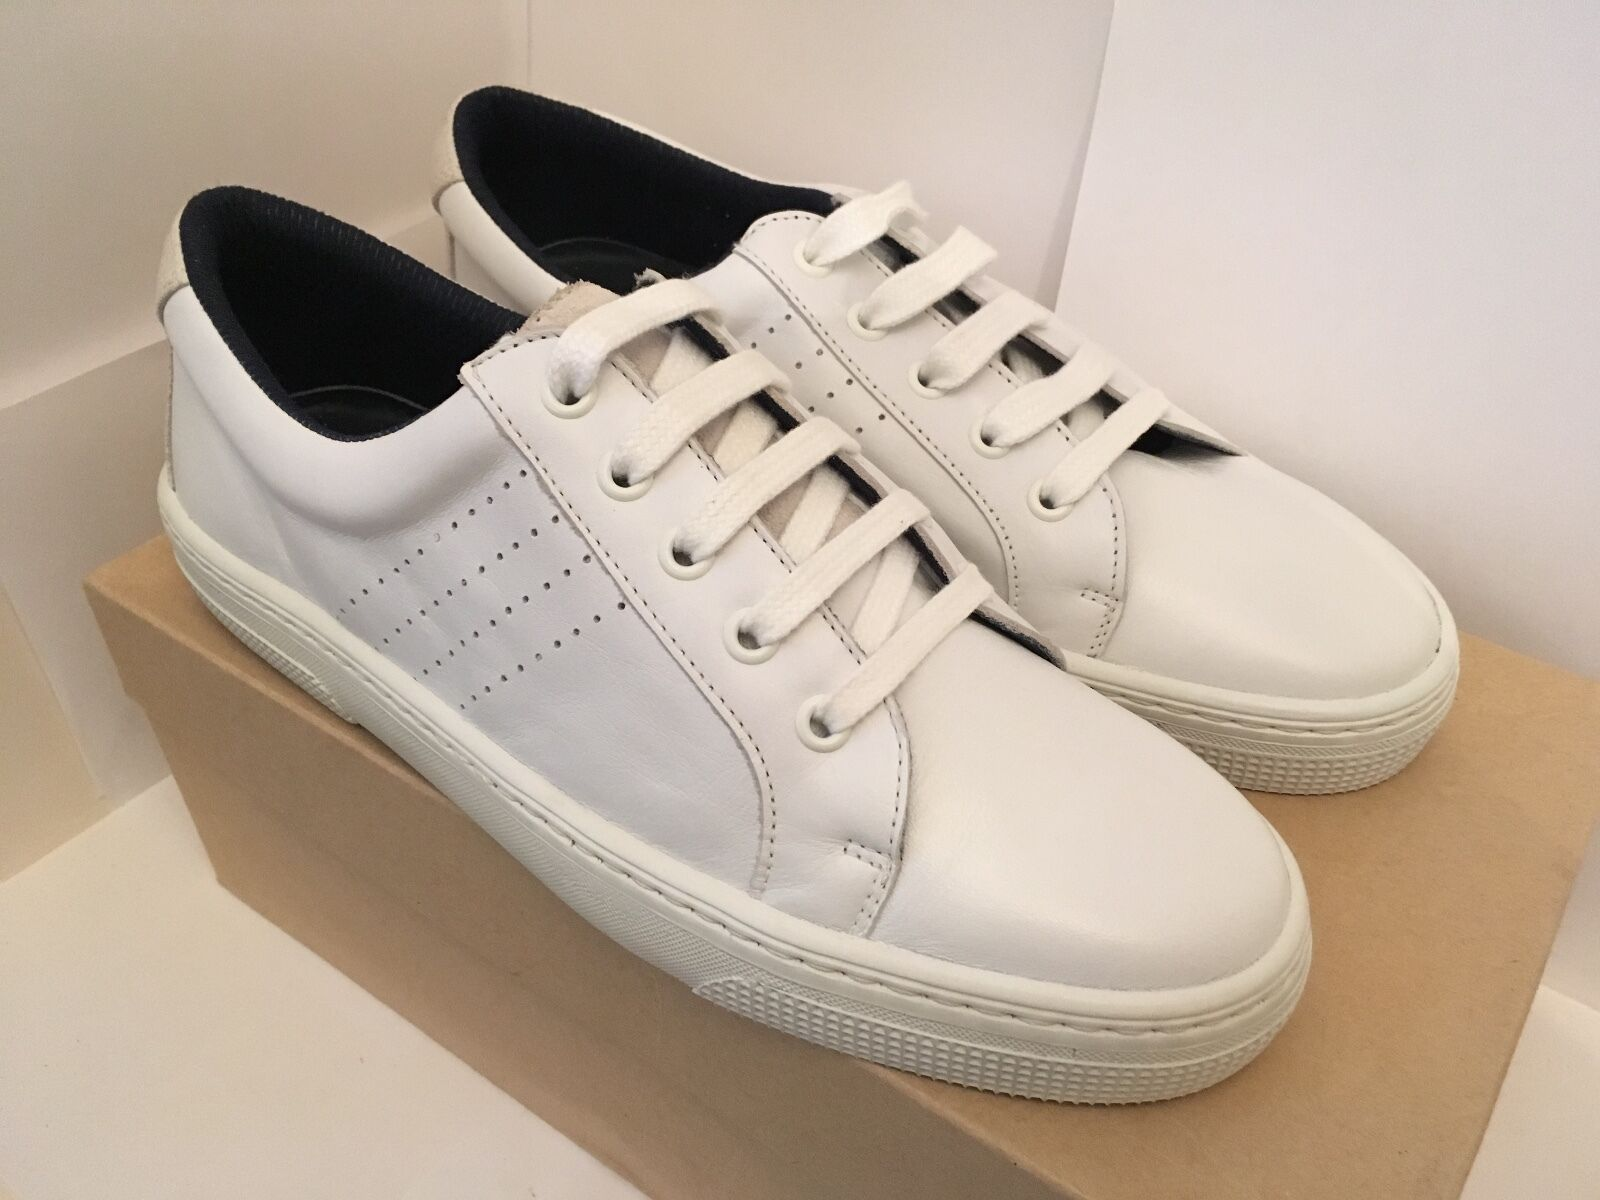 APC  Tamanho  Sneakers......Trainers, Running, Leather, Tennis, Deadstock, Kanye